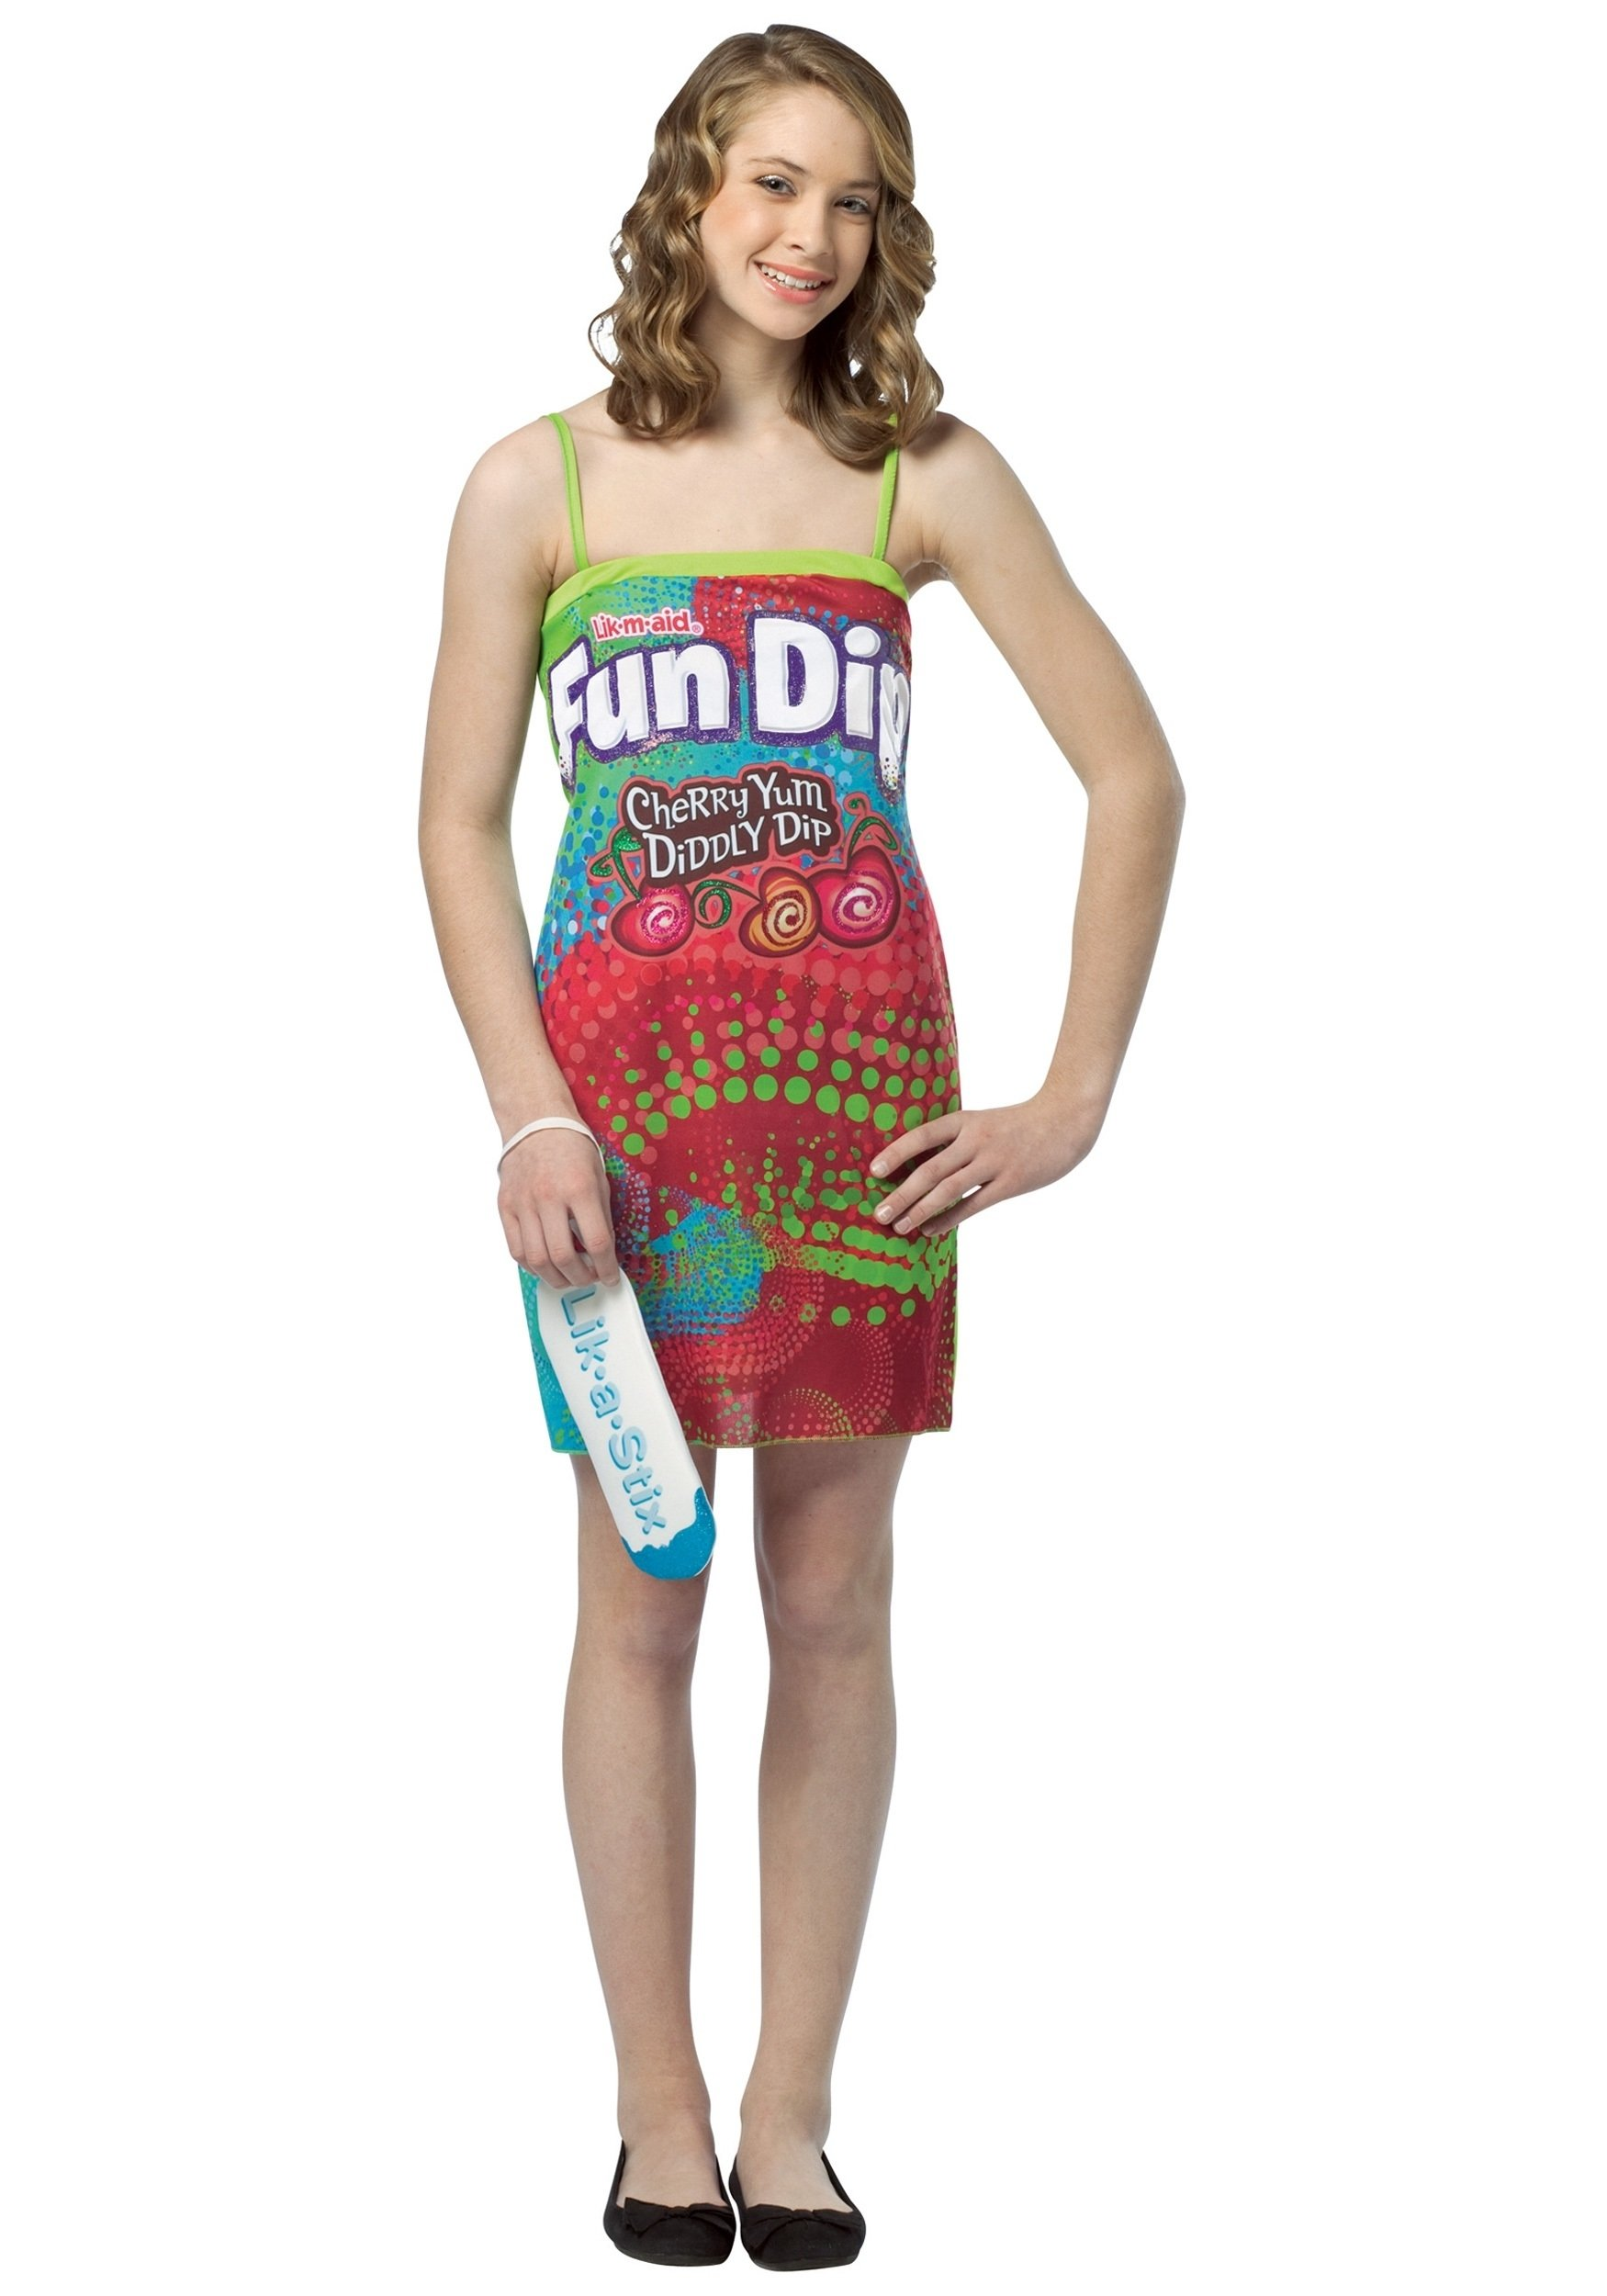 10 Amazing Halloween Costume Ideas Teenage Girls teen fun dip dress halloween costumes 8